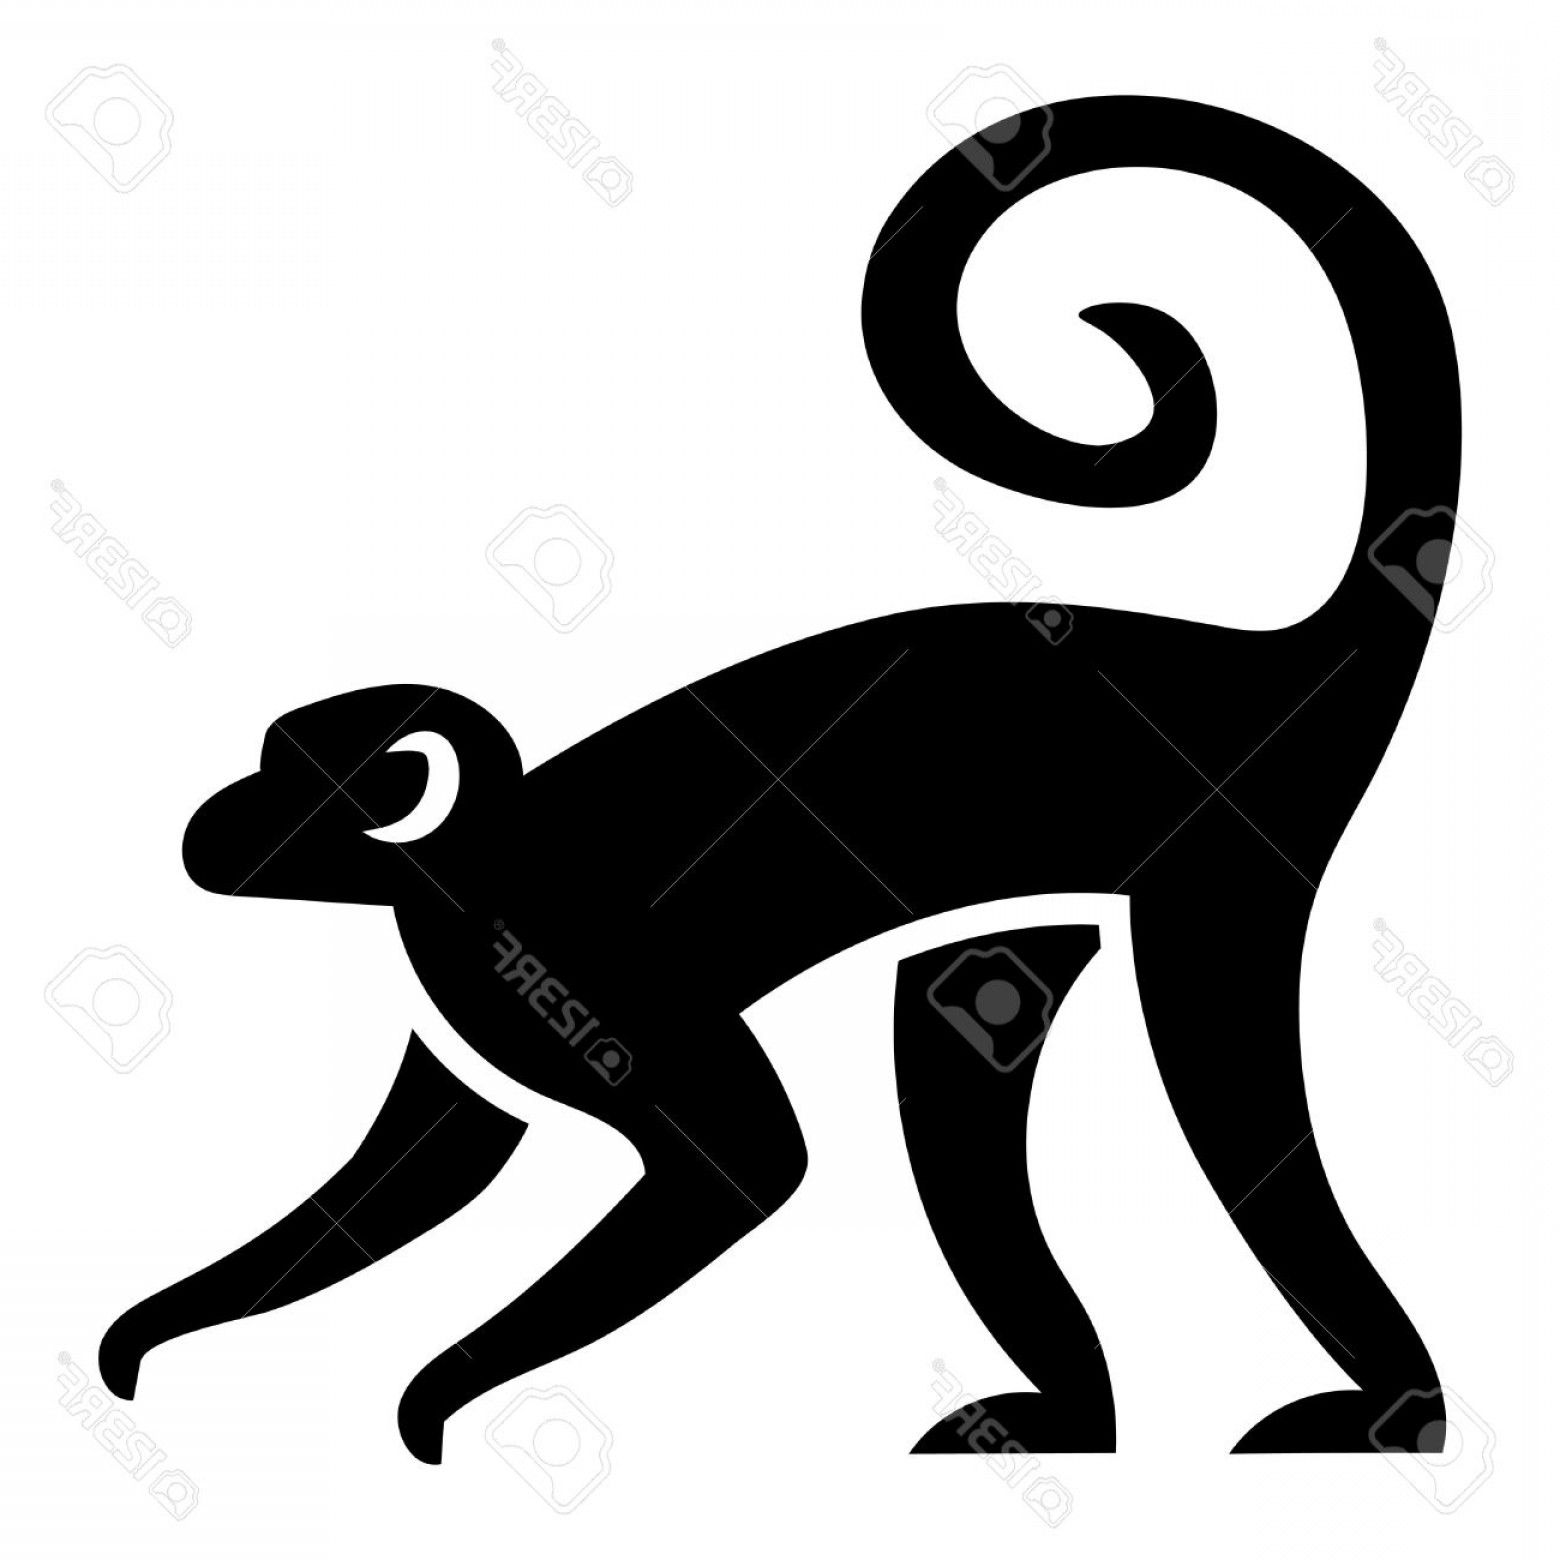 d980ca54d Monkey Vector: Photostock Vector Vector Stylized Monkey Illustration  Isolated On White Background